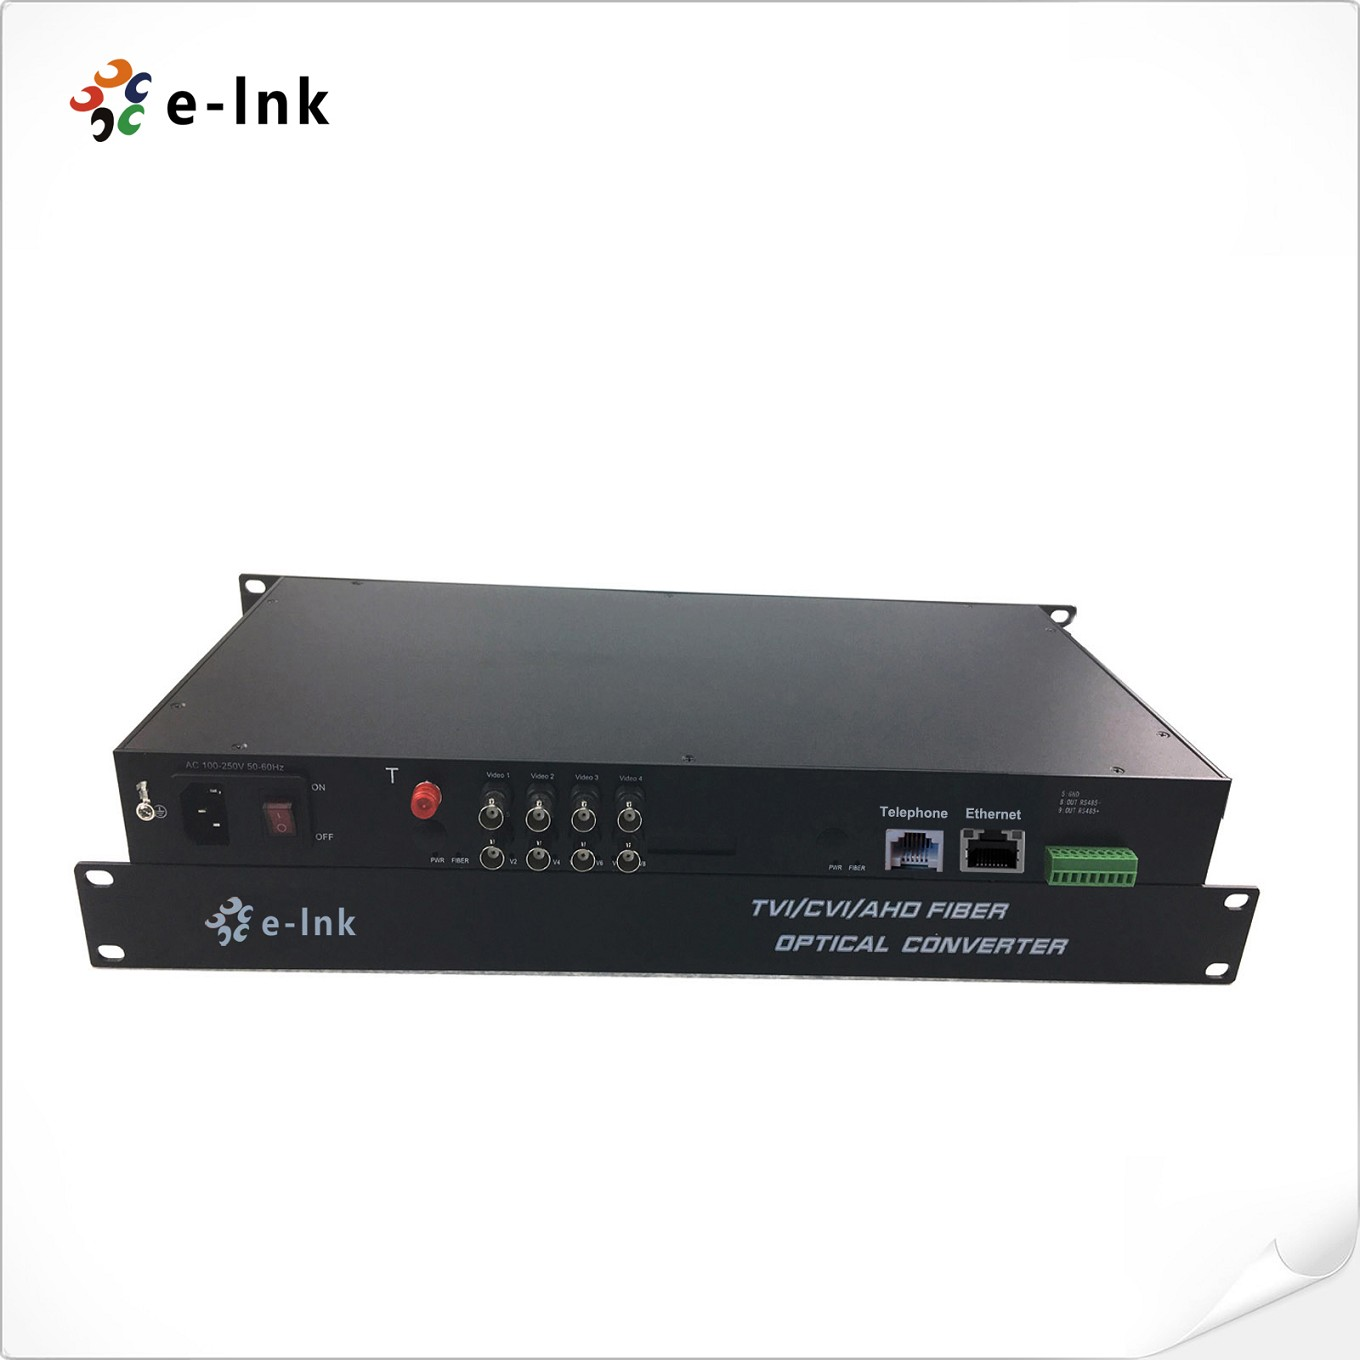 8 Ch 1080P HD Video+10/100M Ethernet FXO/FXS Telephone+RS485 over Fiber Converter